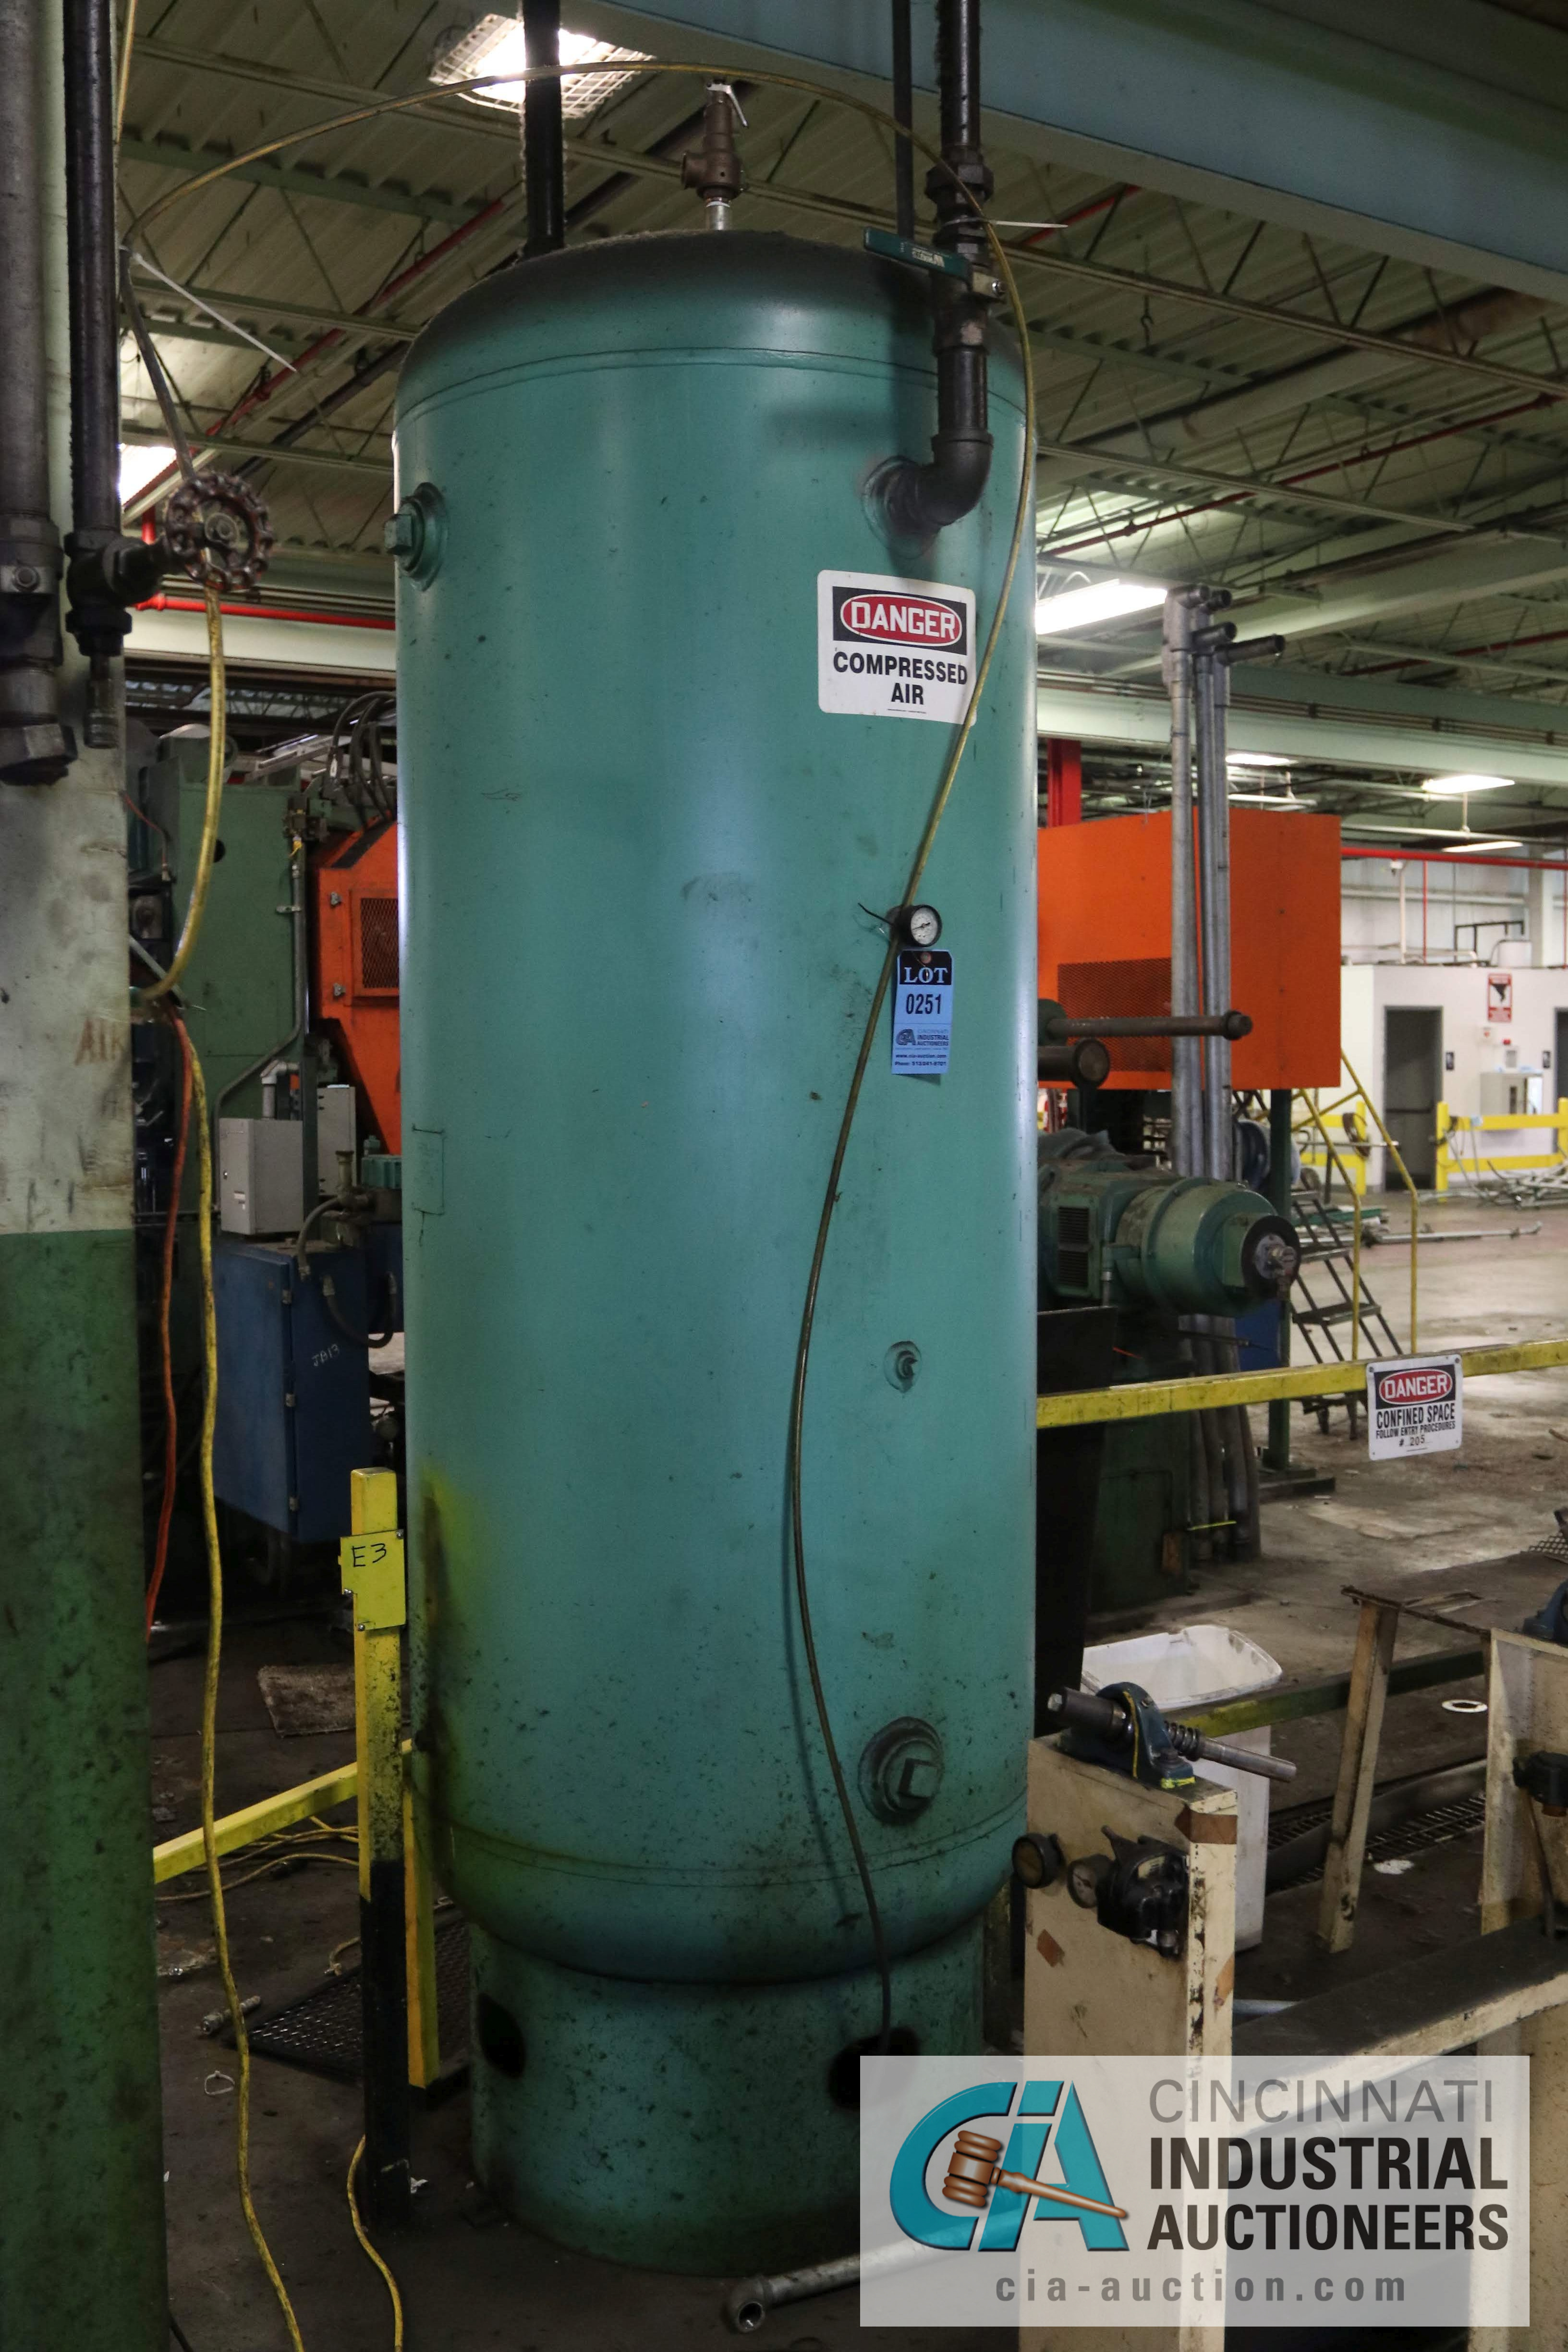 10' AIR TANK - $100.00 Rigging Fee Due to Onsite Rigger - Located in Bryan, Ohio